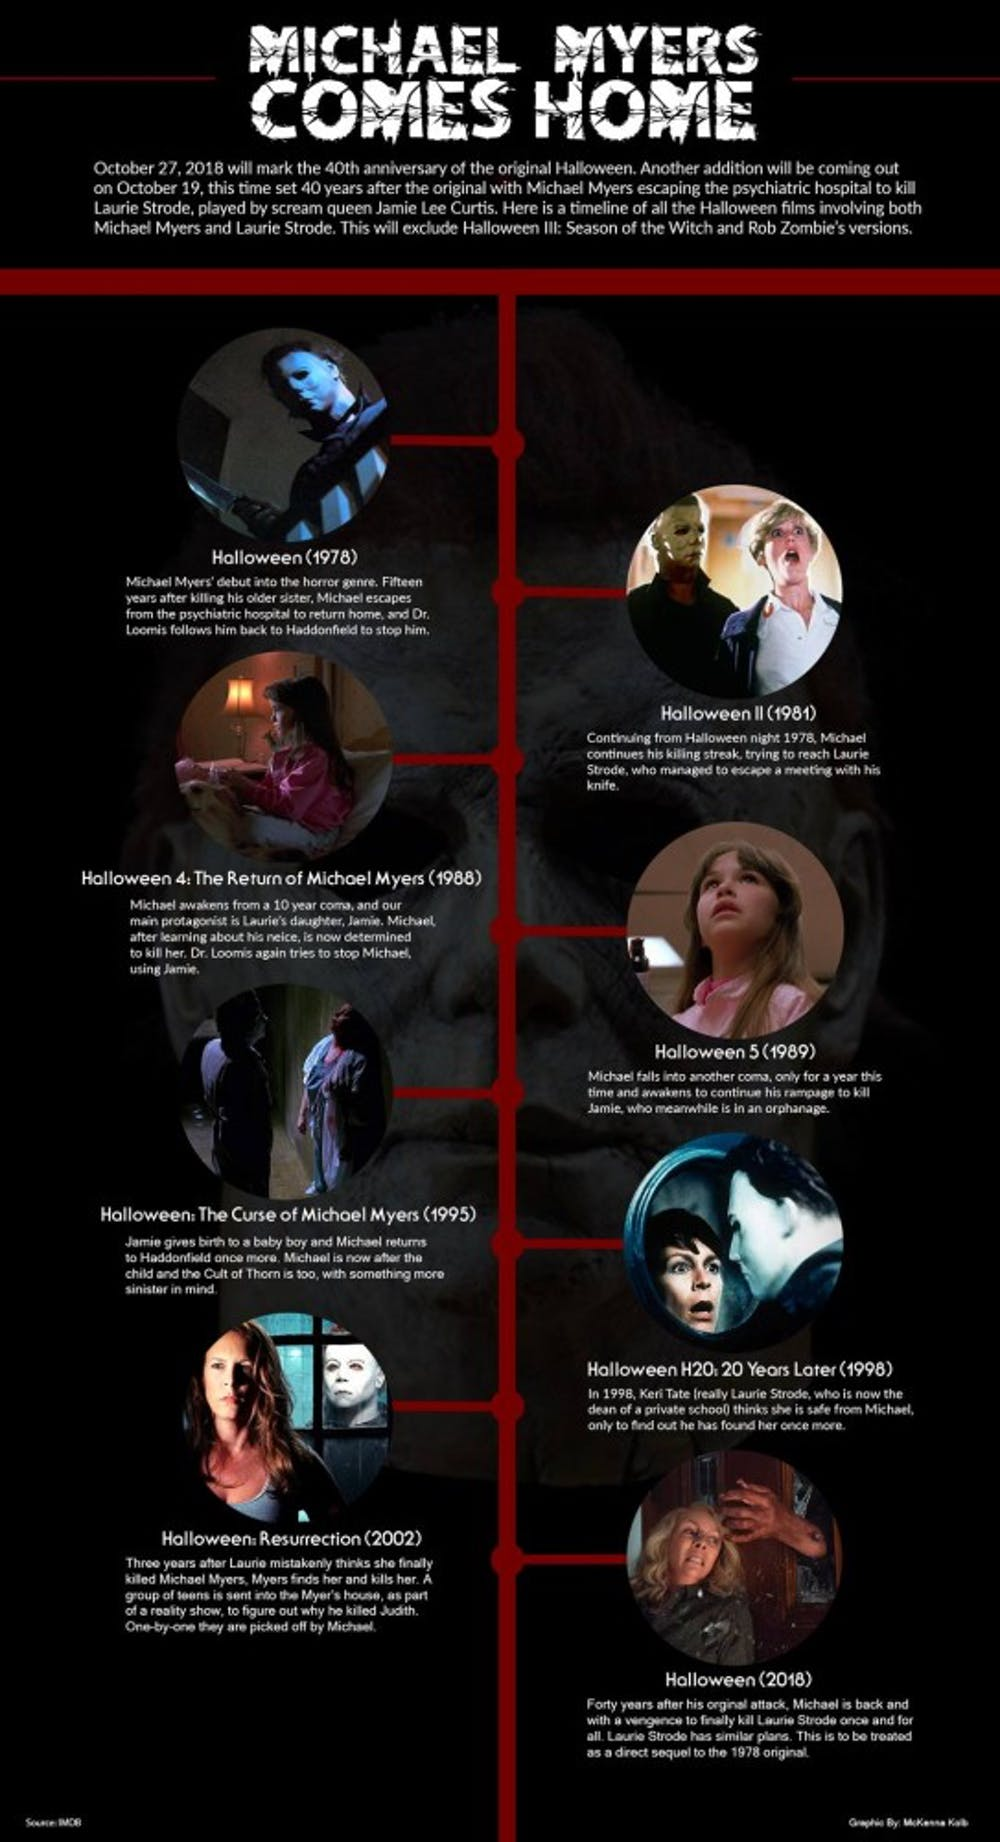 Horror films like 'Halloween' only come once a decade or so